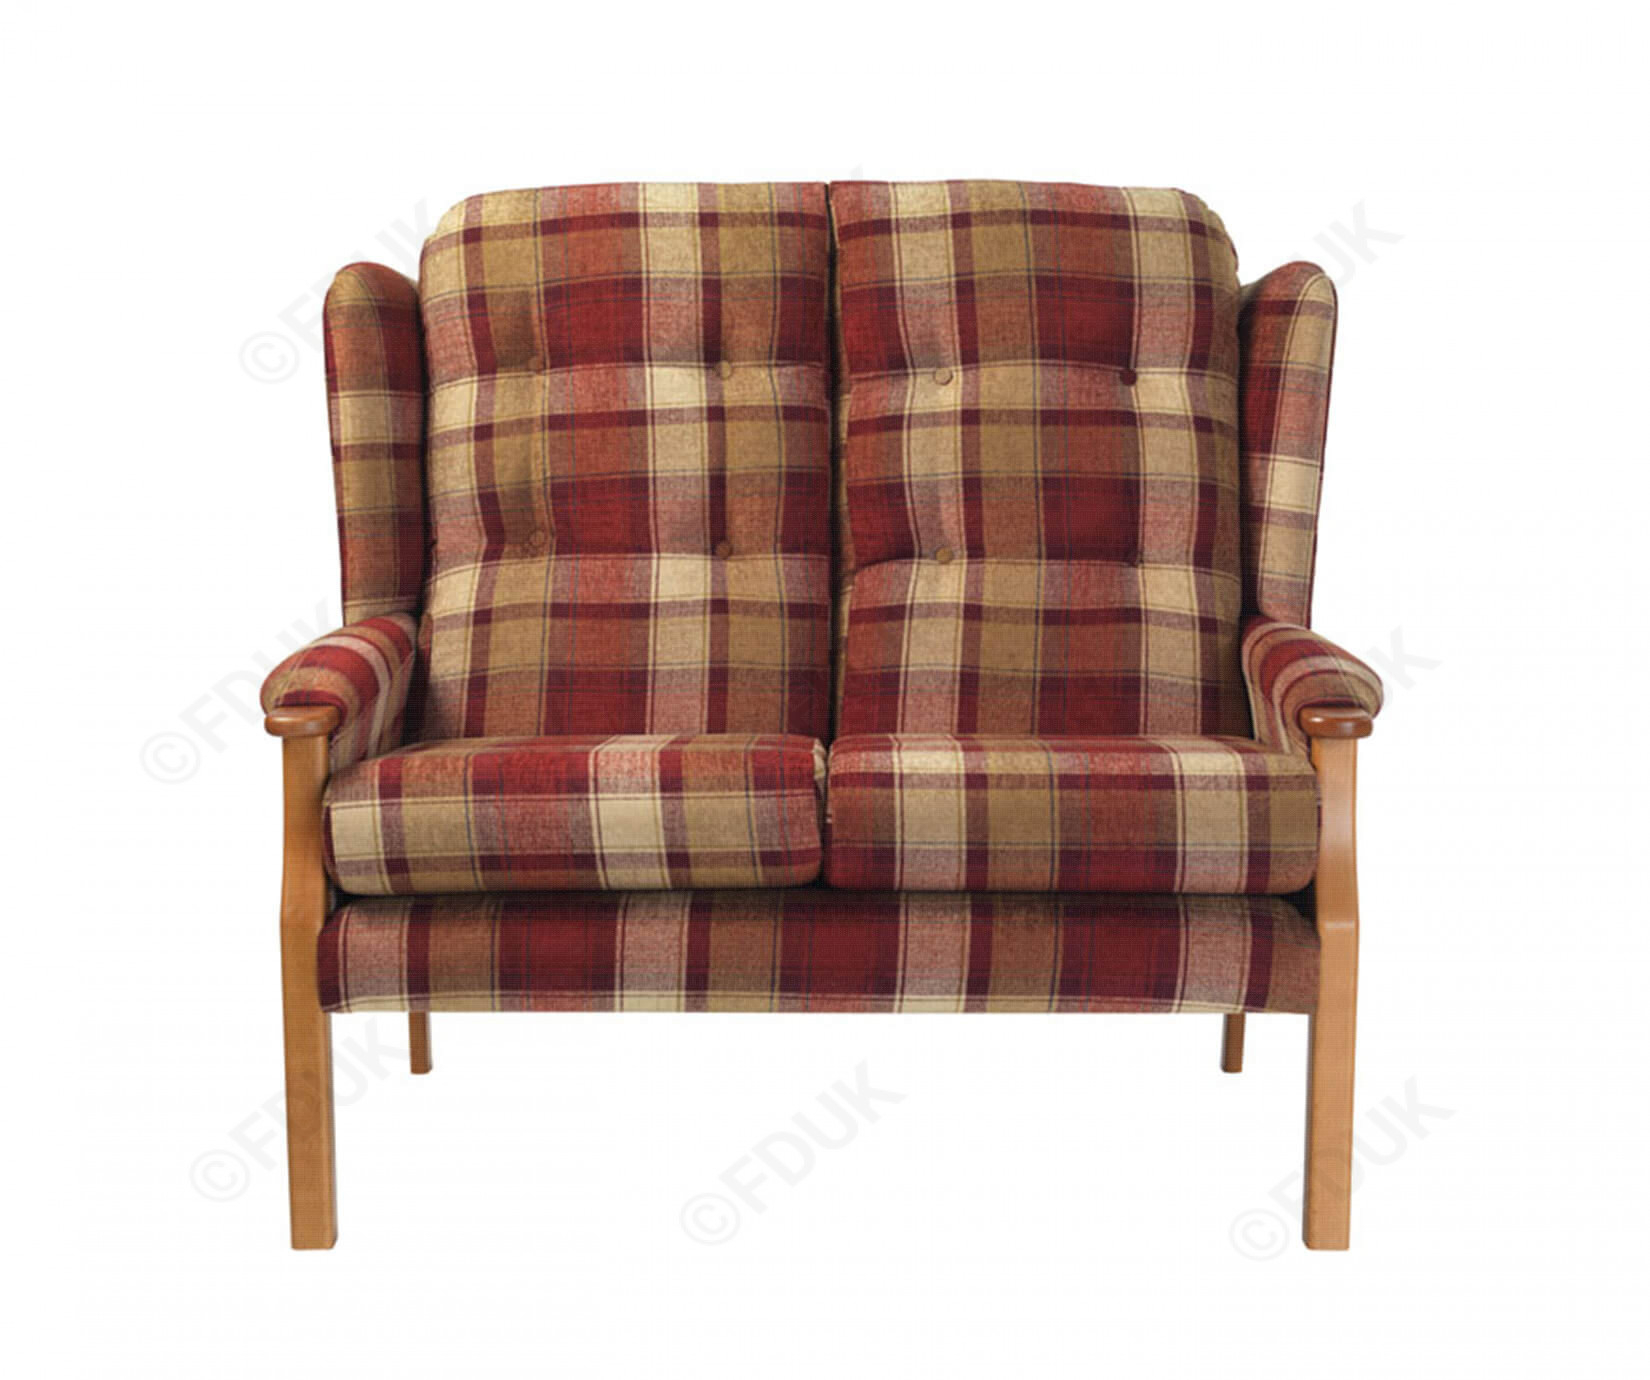 Sweet Dreams Elm | Elm Fabric 2 Seater Sofa | Furnituredirectuk Inside Elm Sofa Chairs (View 18 of 25)